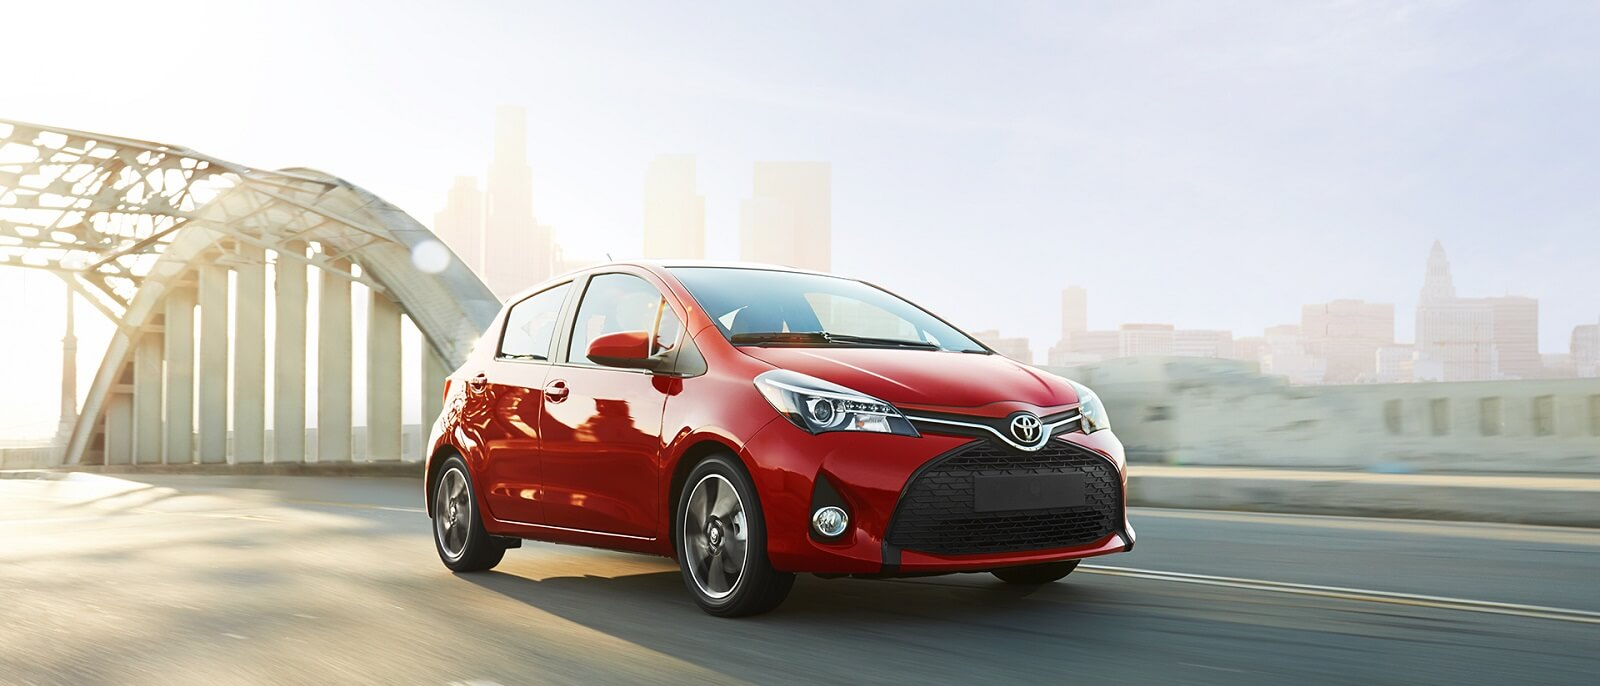 2017 Toyota Yaris Red